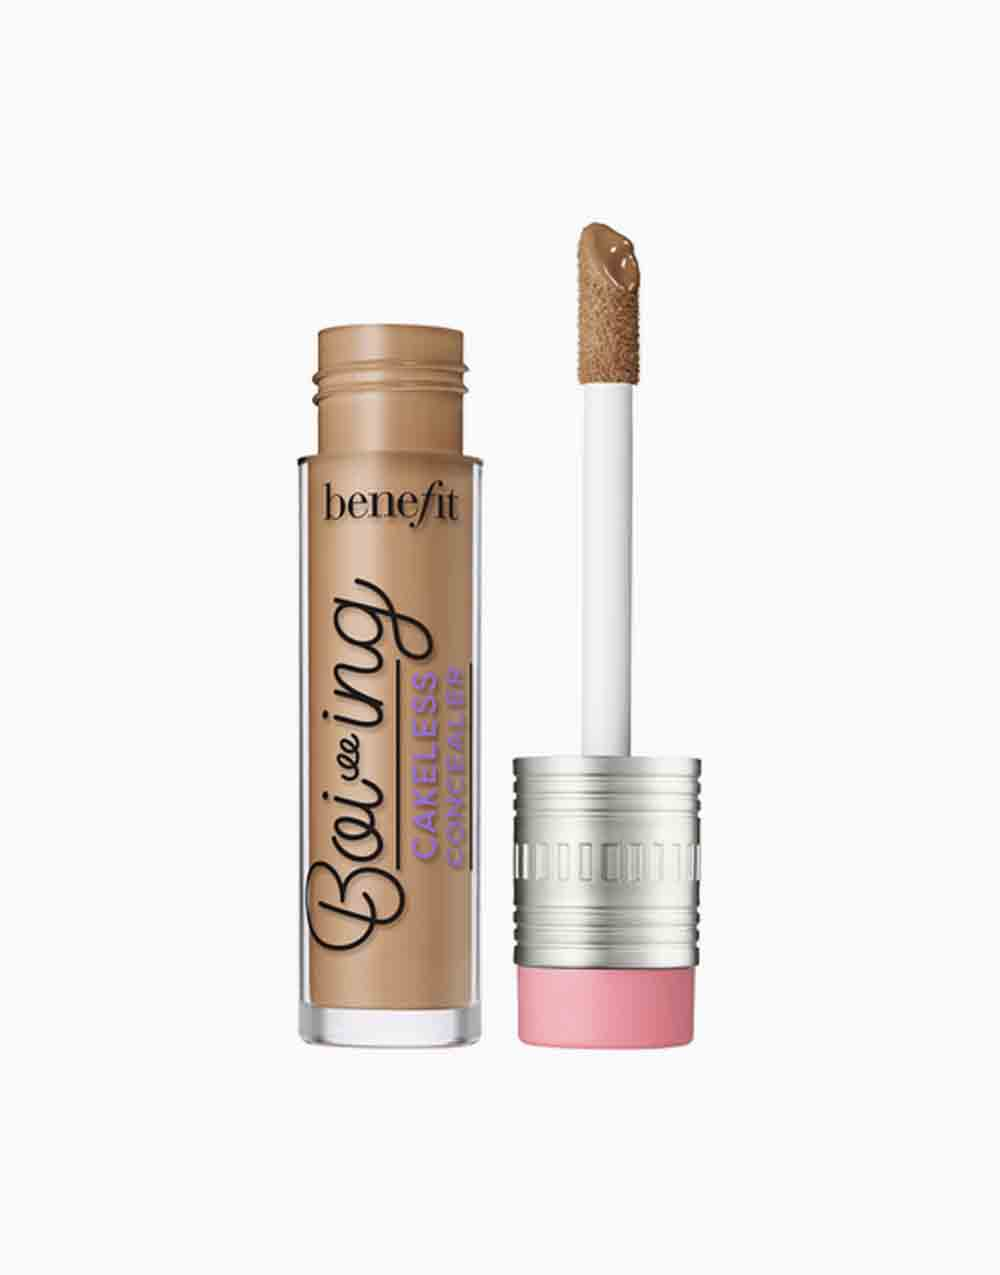 Boi-ing Cakeless Concealer by Benefit | Shade 9